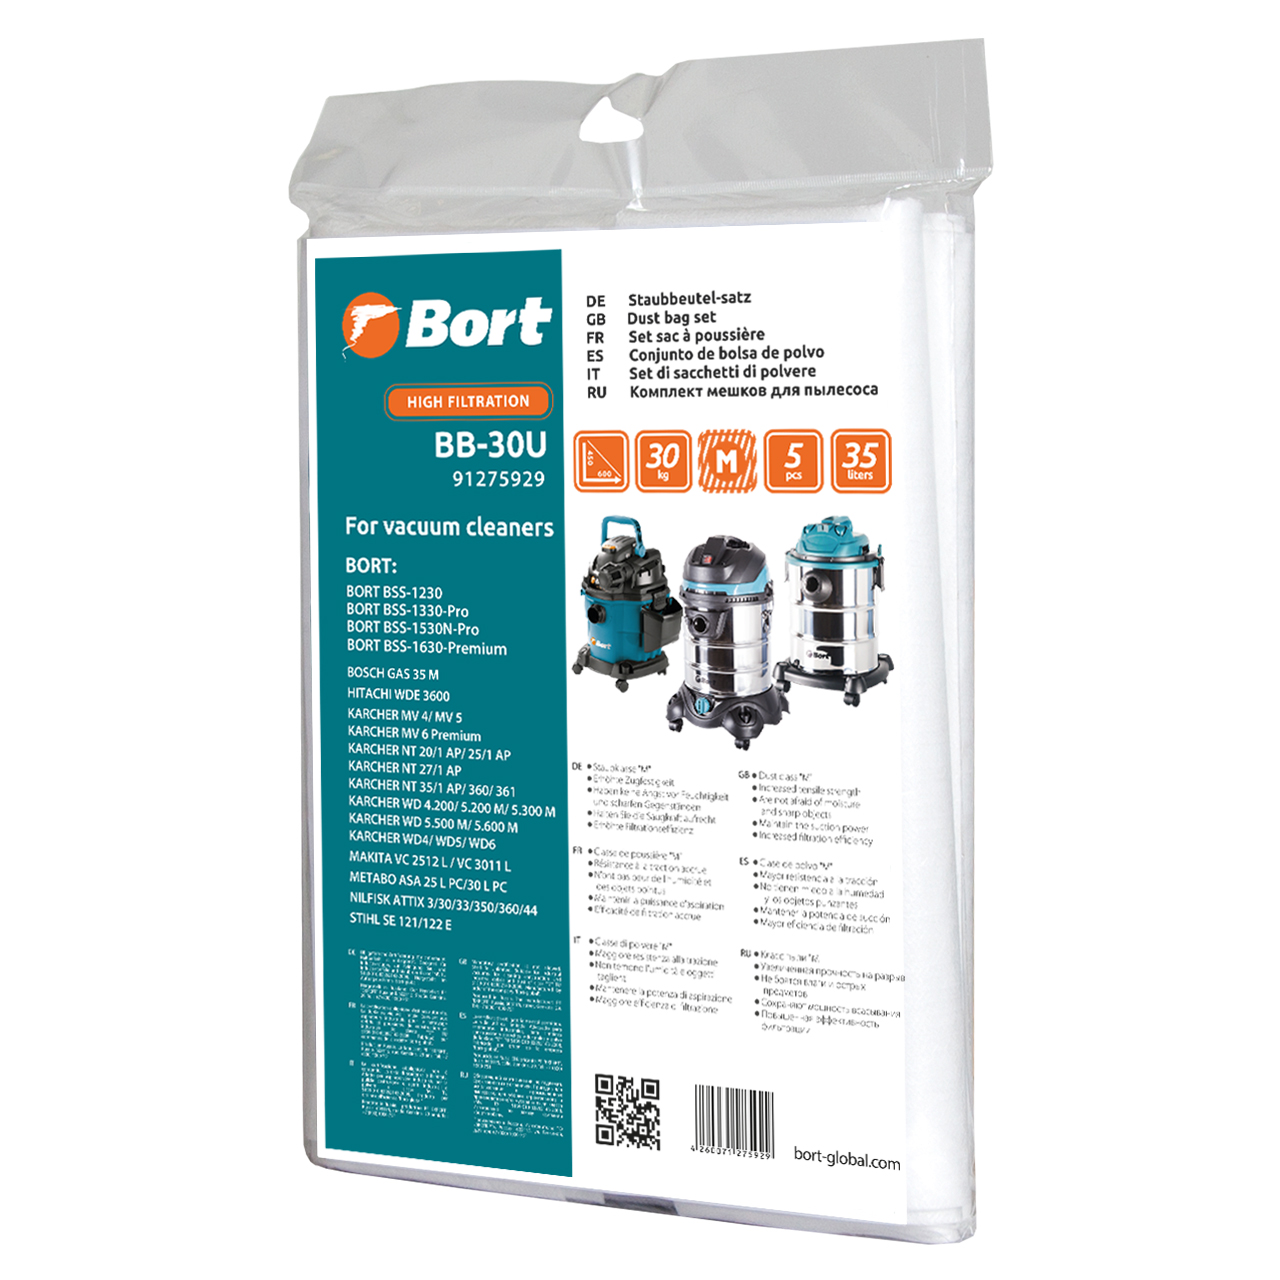 Bags set dust collection for vacuum Cleaner bort BB-30U (volume 35, 5 pcs BSS-1230; BSS-1330-Pro; BSS-1530N-Pro; BSS-1630-Pre